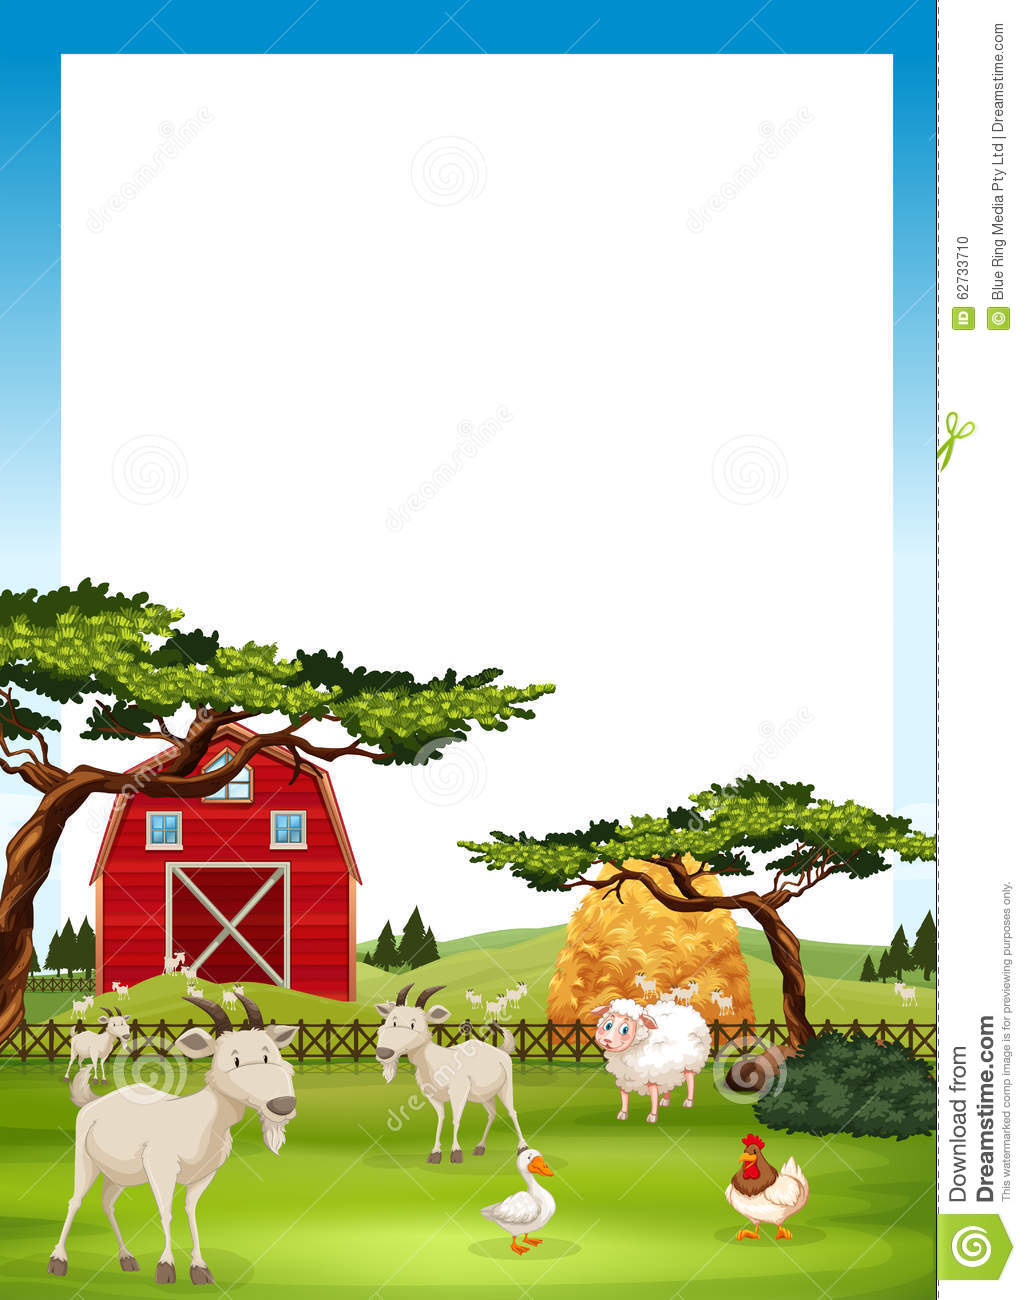 border design with farm animals stock vector image 62733710 clipart of farm animals 3-d clip art of farm animals printables